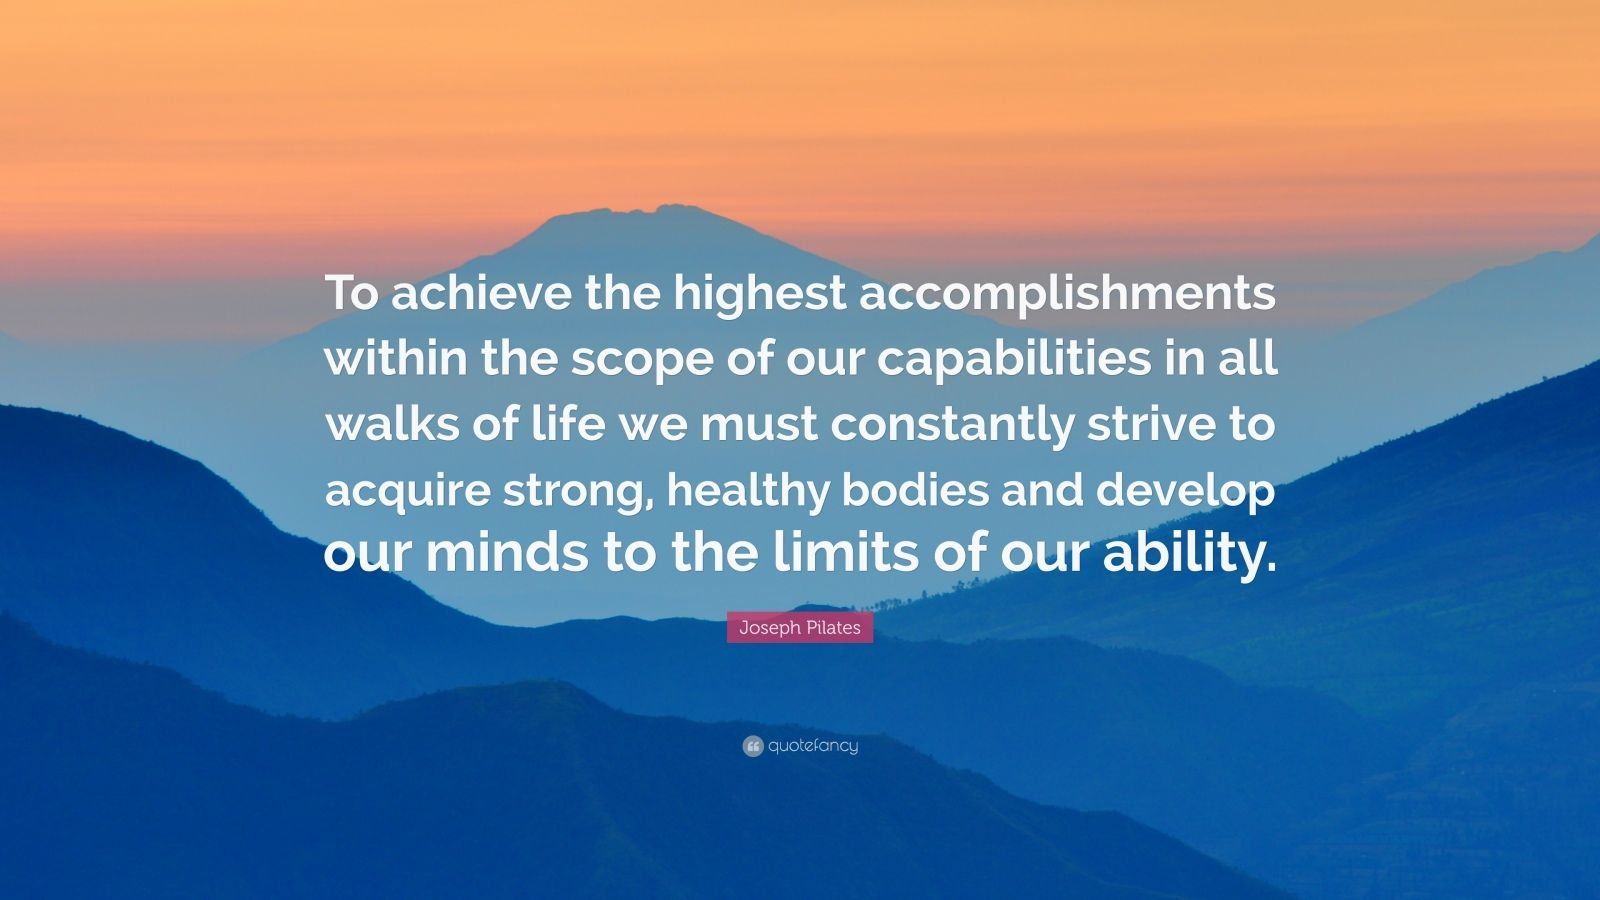 """Joseph Pilates Quote: """"To achieve the highest accomplishments within the scope of our capabilities in all walks of life we must constantly strive to acquire strong, healthy bodies and develop our minds to the limits of our ability."""""""